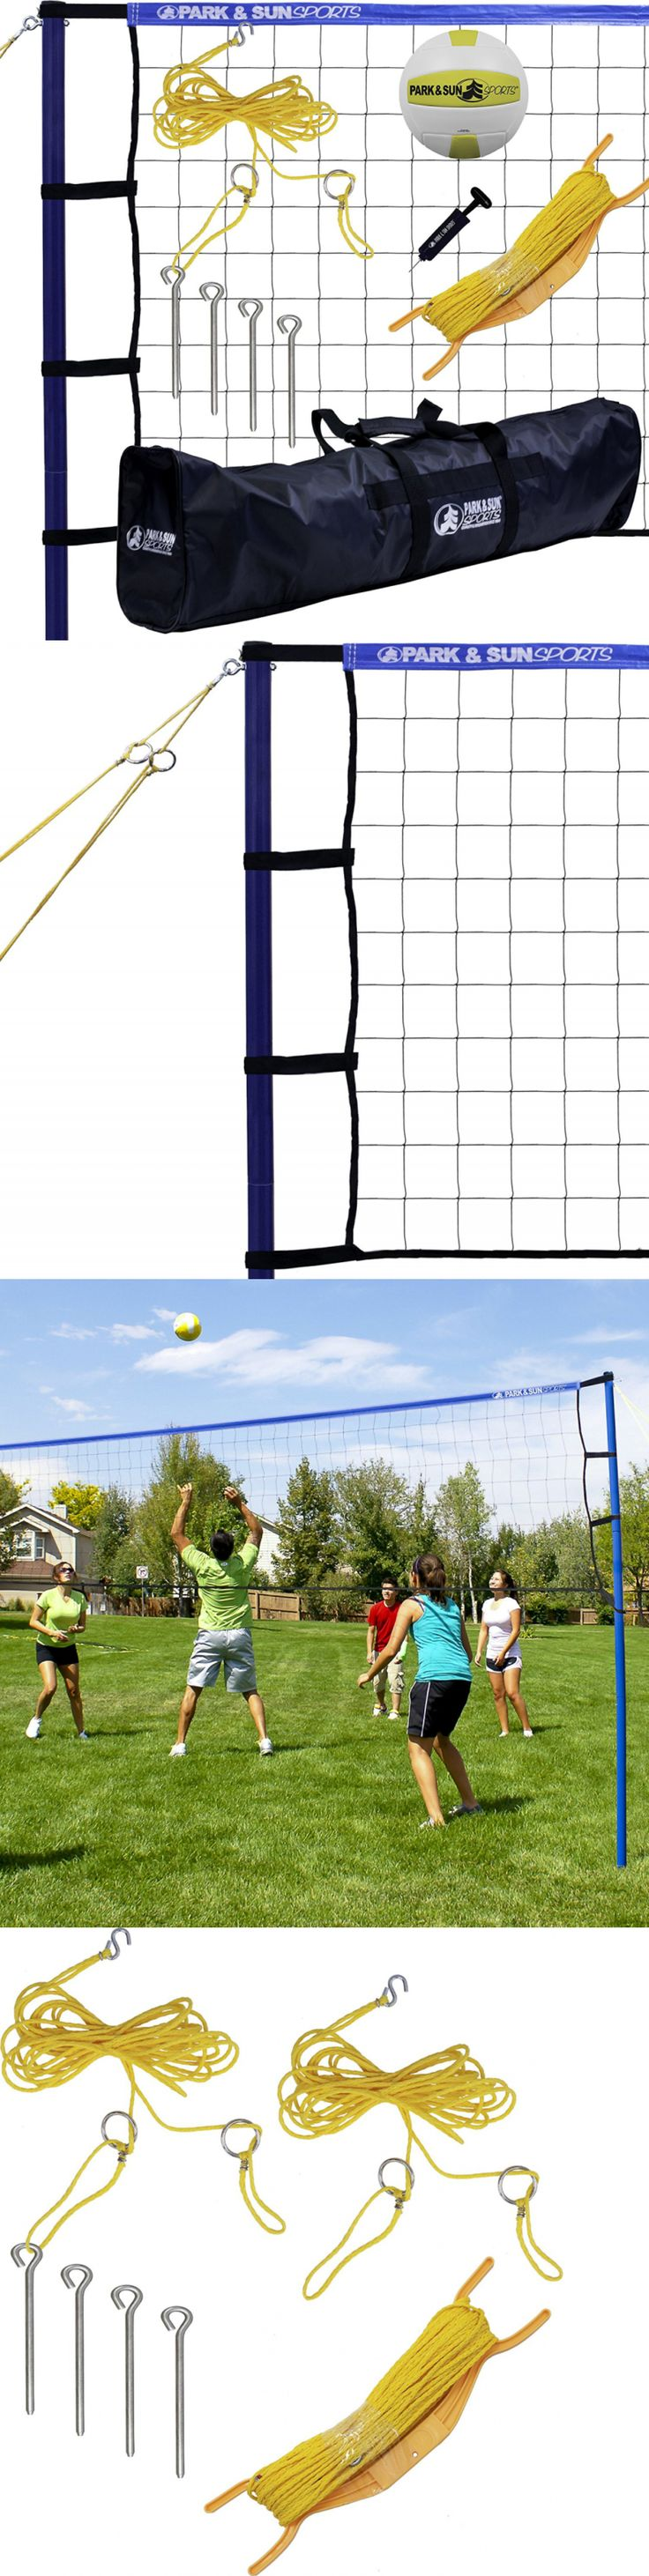 Nets 159131: Volleyball Net Set Portable Court System Equipment Outdoor Beach Backyard Play N -> BUY IT NOW ONLY: $101.95 on eBay!